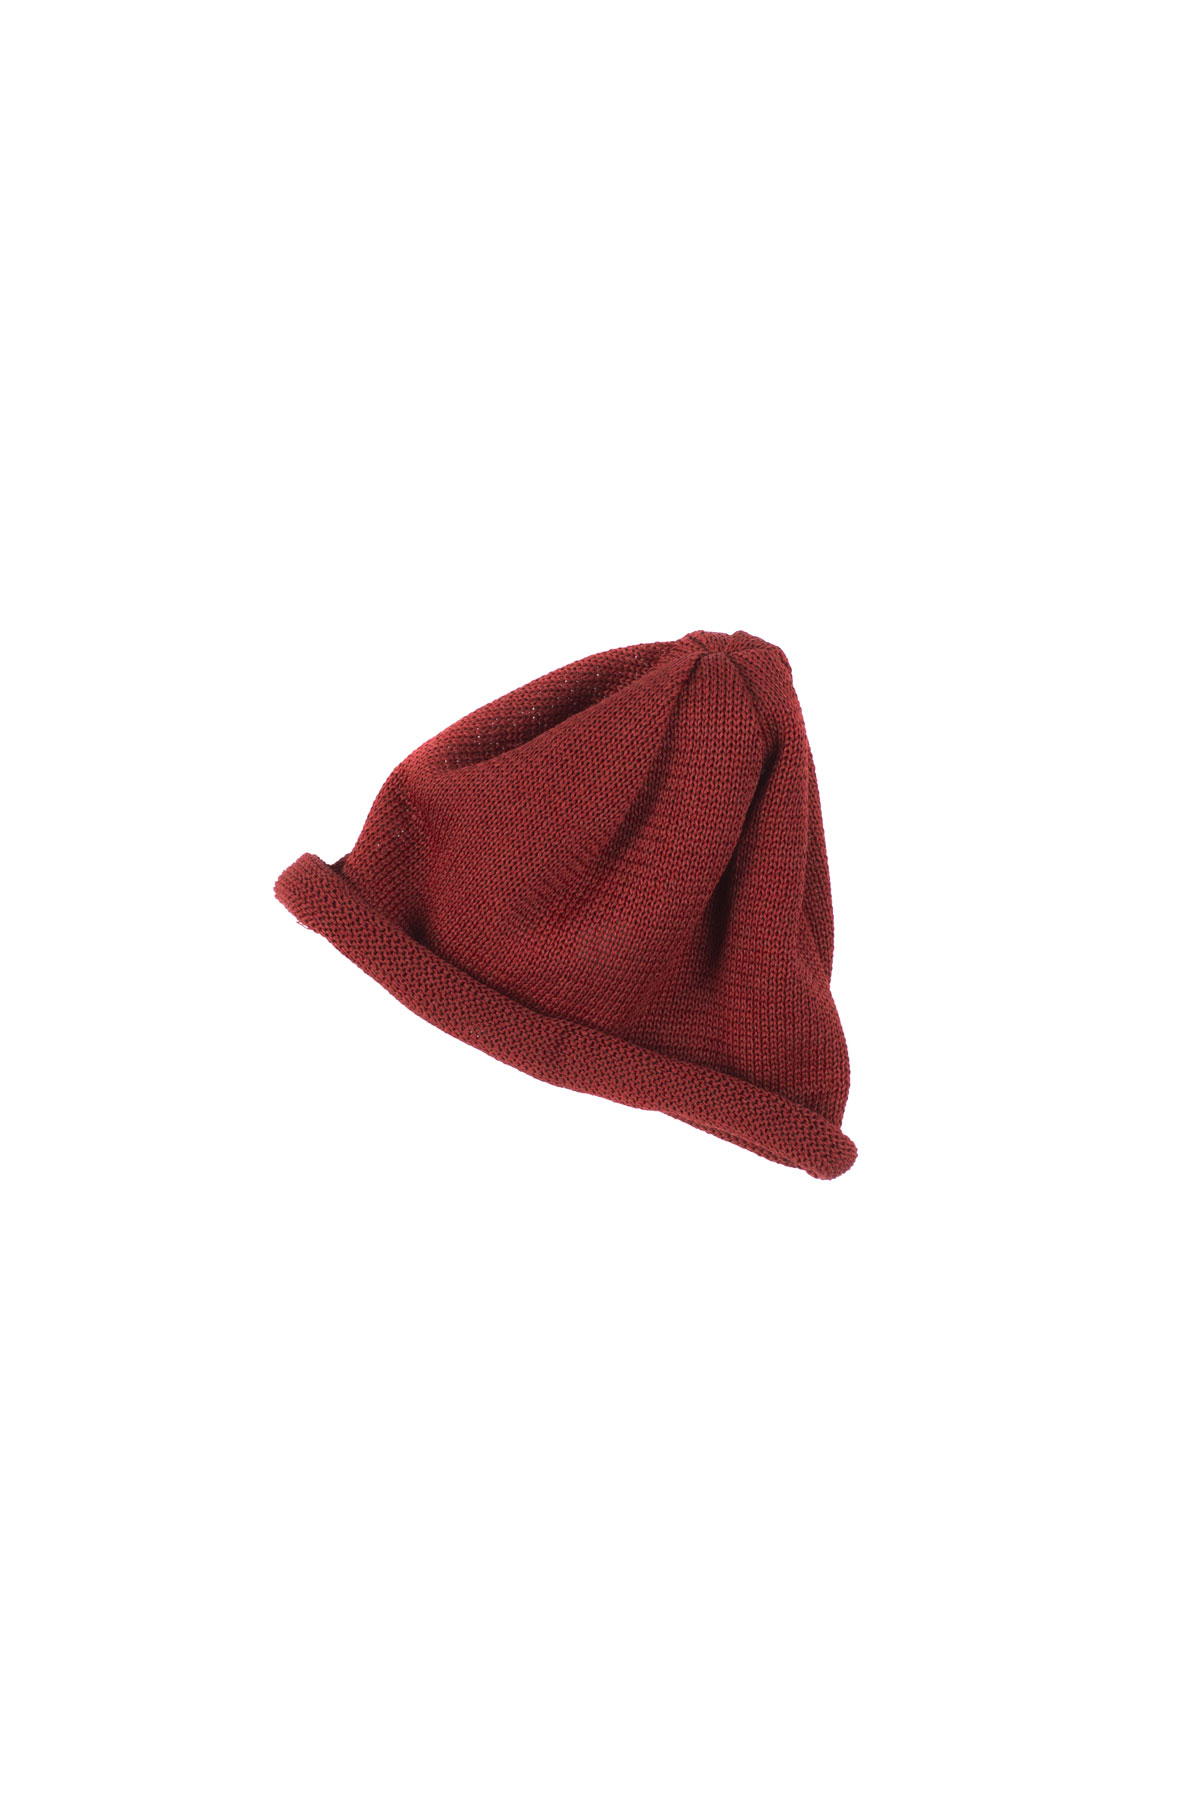 Infielder Design : Straw Roll Knit Cap (Red)